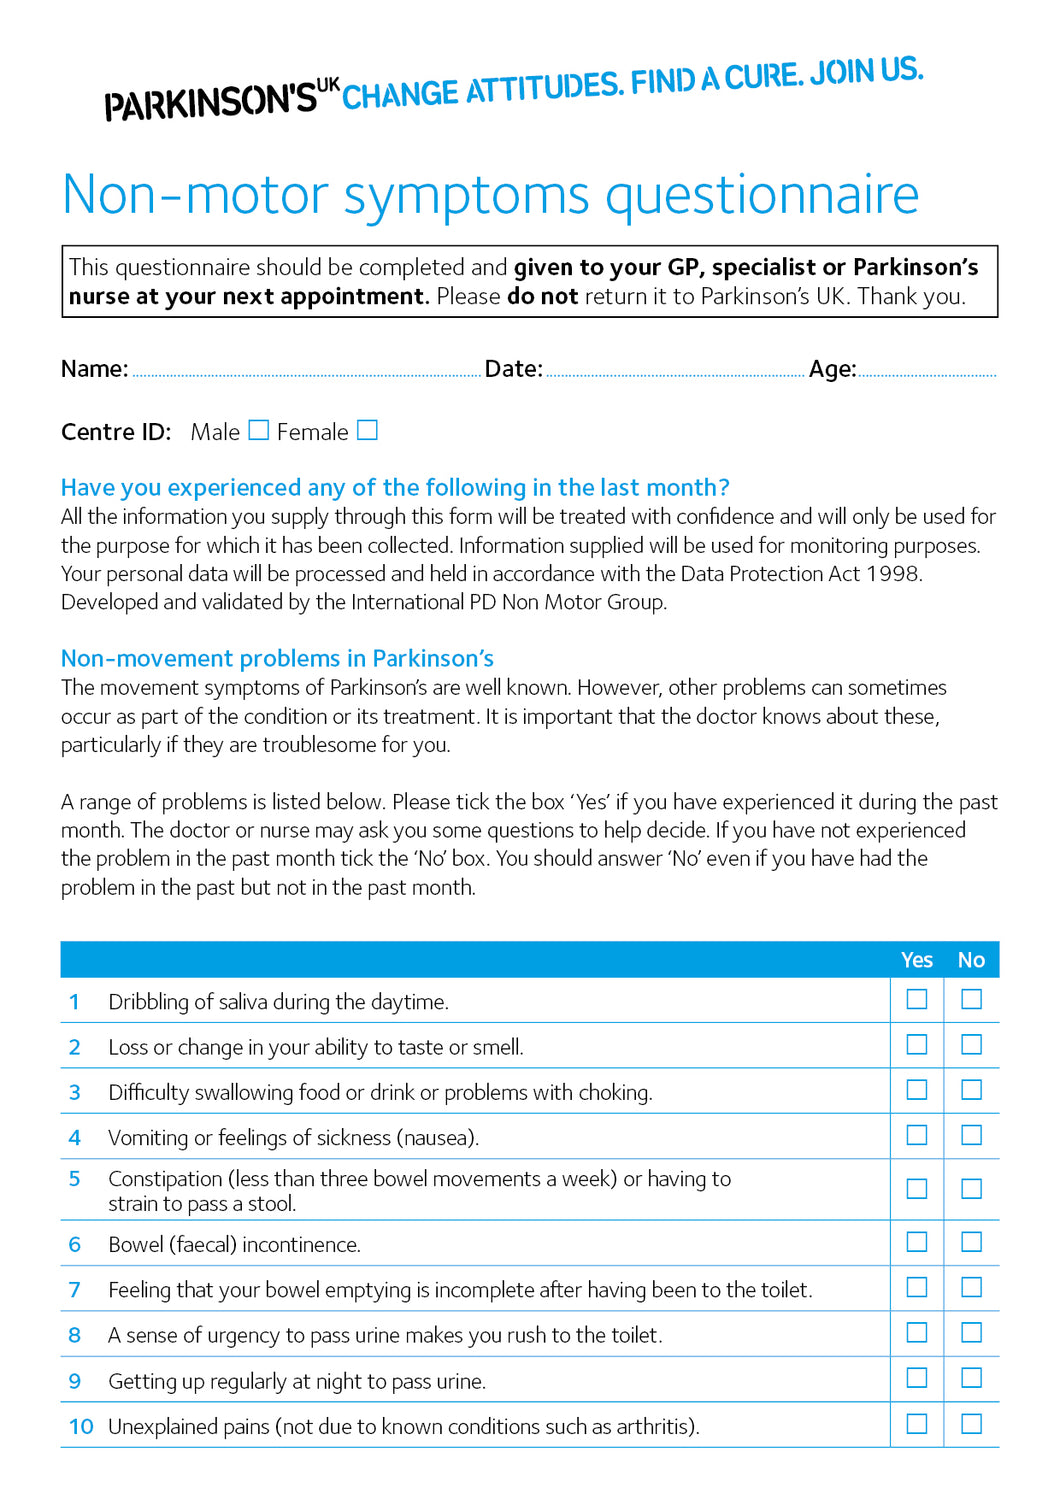 Non-motor symptoms (NMS) questionnaire - Parkinson's shop